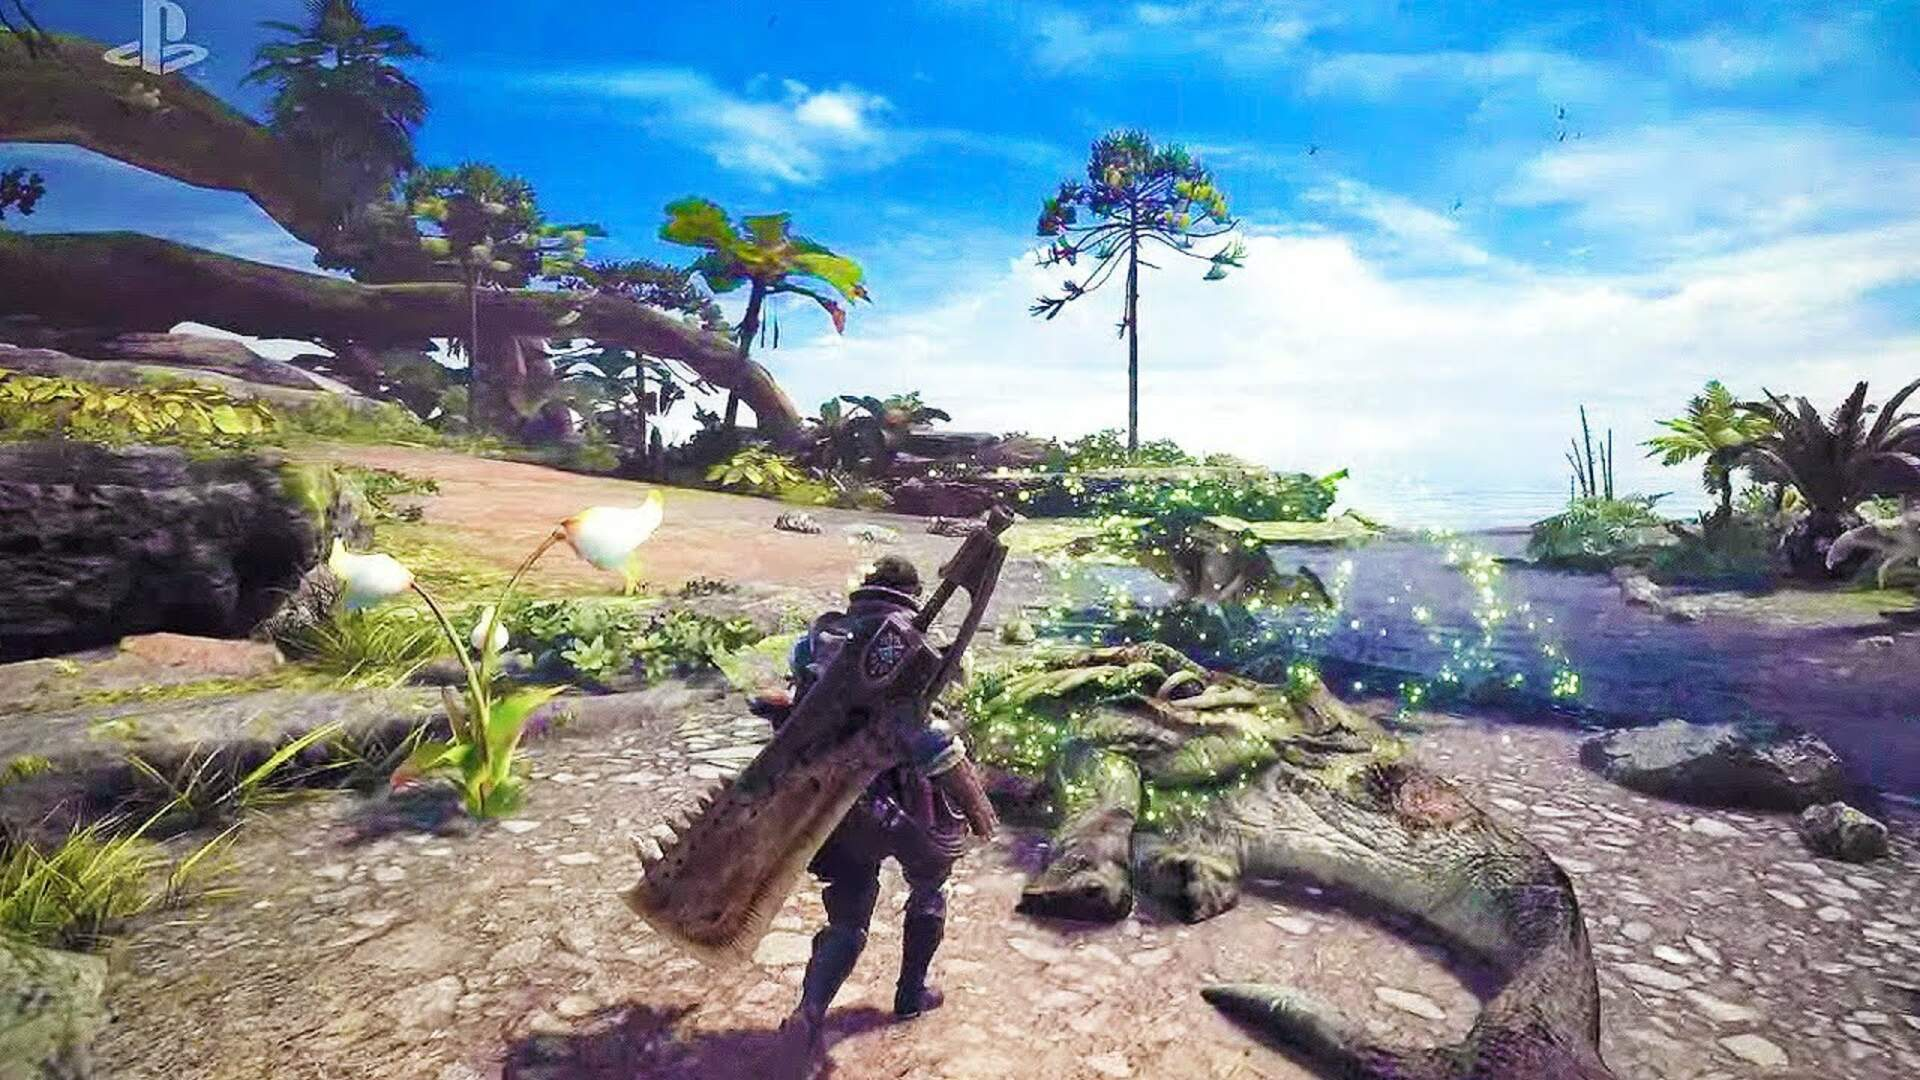 Monster Hunter World PC Patch 1.01 Now Live, Fixes Connectivity Issues